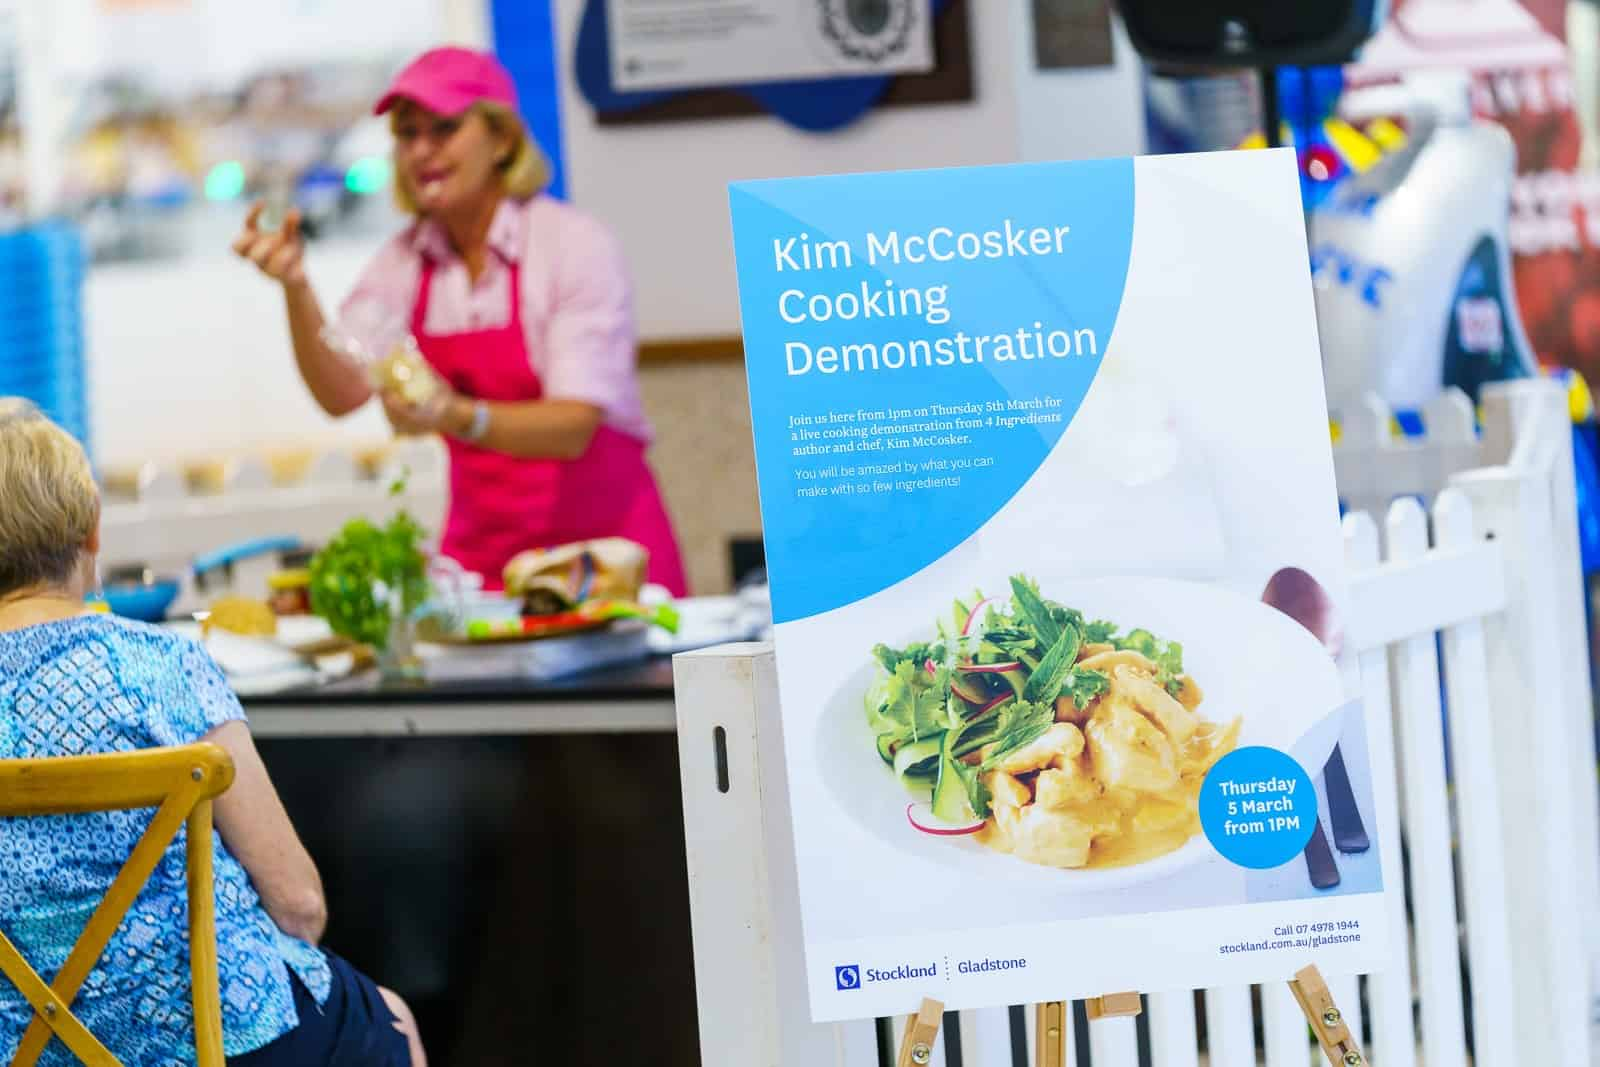 Kym McCosker at Stockland Gladstone